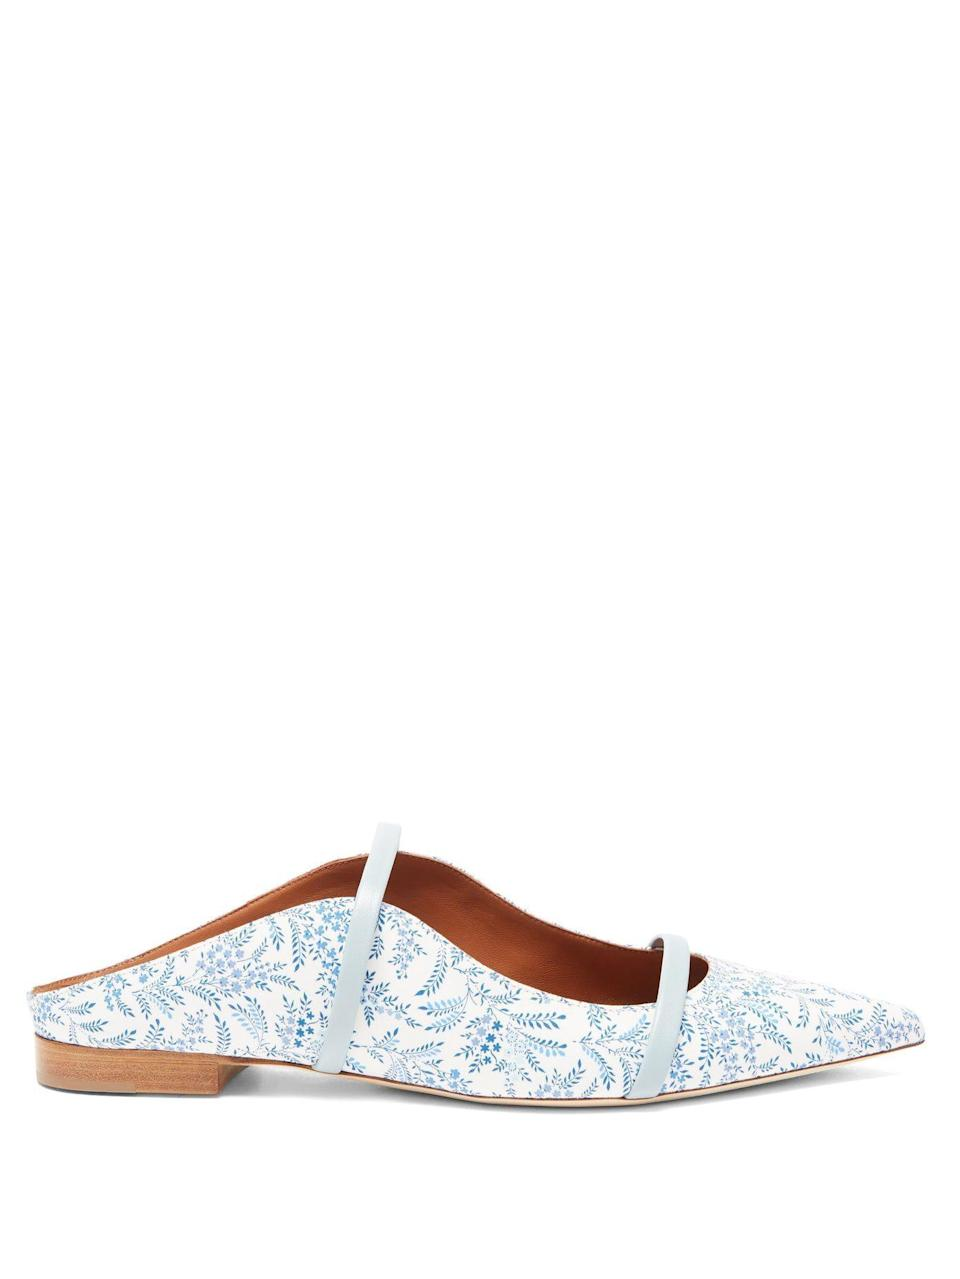 """<p><strong>MALONE SOULIERS</strong></p><p>matchesfashion.com</p><p><strong>$545.00</strong></p><p><a href=""""https://go.redirectingat.com?id=74968X1596630&url=https%3A%2F%2Fwww.matchesfashion.com%2Fus%2Fproducts%2FMalone-Souliers-Maureen-floral-print-backless-flats-1408251&sref=https%3A%2F%2Fwww.harpersbazaar.com%2Fwedding%2Fbridal-fashion%2Fg36113322%2Fwedding-flats-for-brides%2F"""" rel=""""nofollow noopener"""" target=""""_blank"""" data-ylk=""""slk:SHOP NOW"""" class=""""link rapid-noclick-resp"""">SHOP NOW</a></p><p>For a feminine take on a classic silhouette, opt for a flat mule in a dainty blue floral motif print—it works as your something blue, and pairs well with floral and ivory looks alike.</p>"""